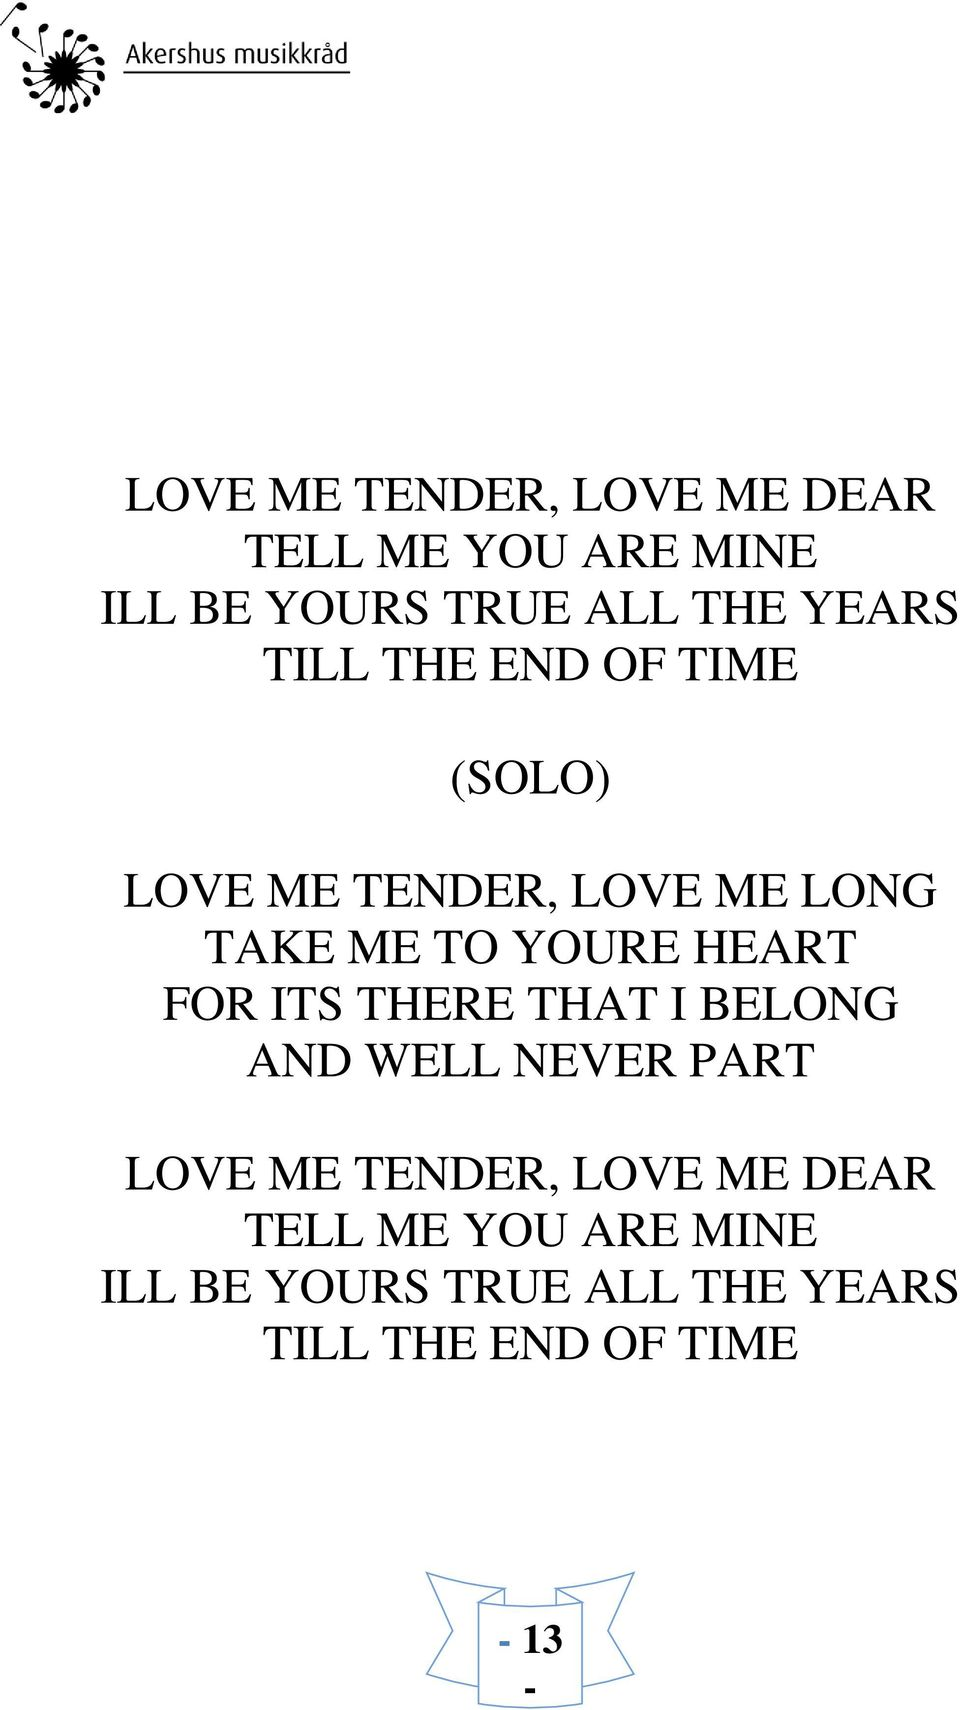 YOURE HEART FOR ITS THERE THAT I BELONG AND WELL NEVER PART LOVE ME TENDER,